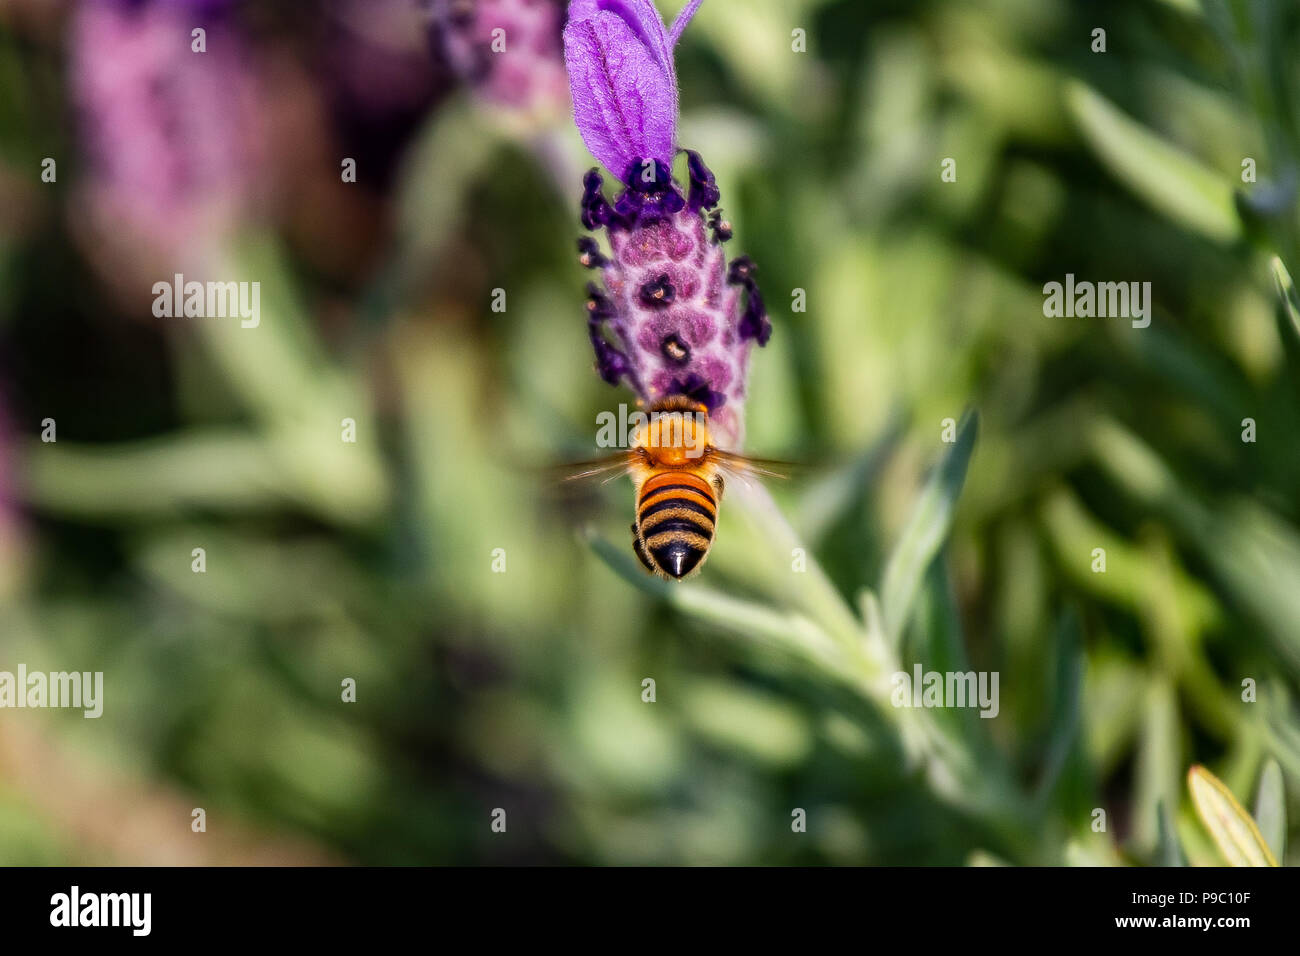 a honey bee prepares to land on a budding rosemary flowers in a park in Yokohama - Stock Image